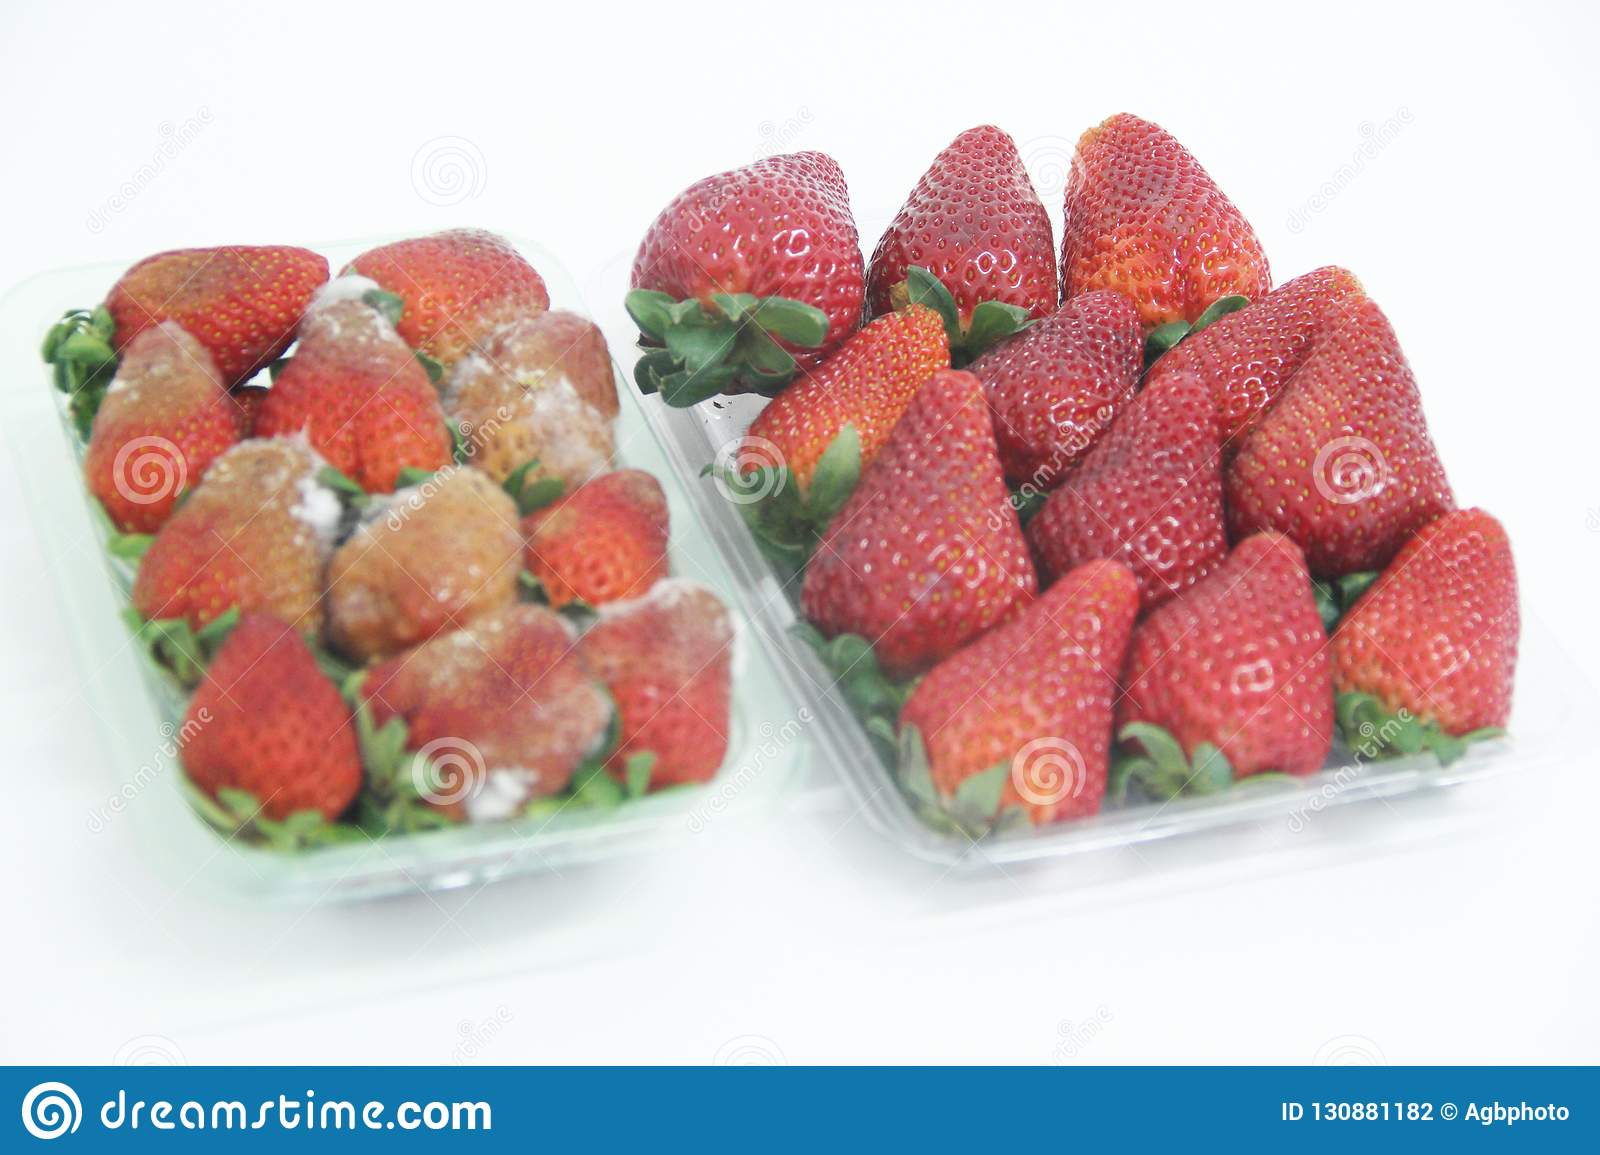 Strawberry food agriculture isolated mold delicious healthful fruit Sao Paulo Brazil